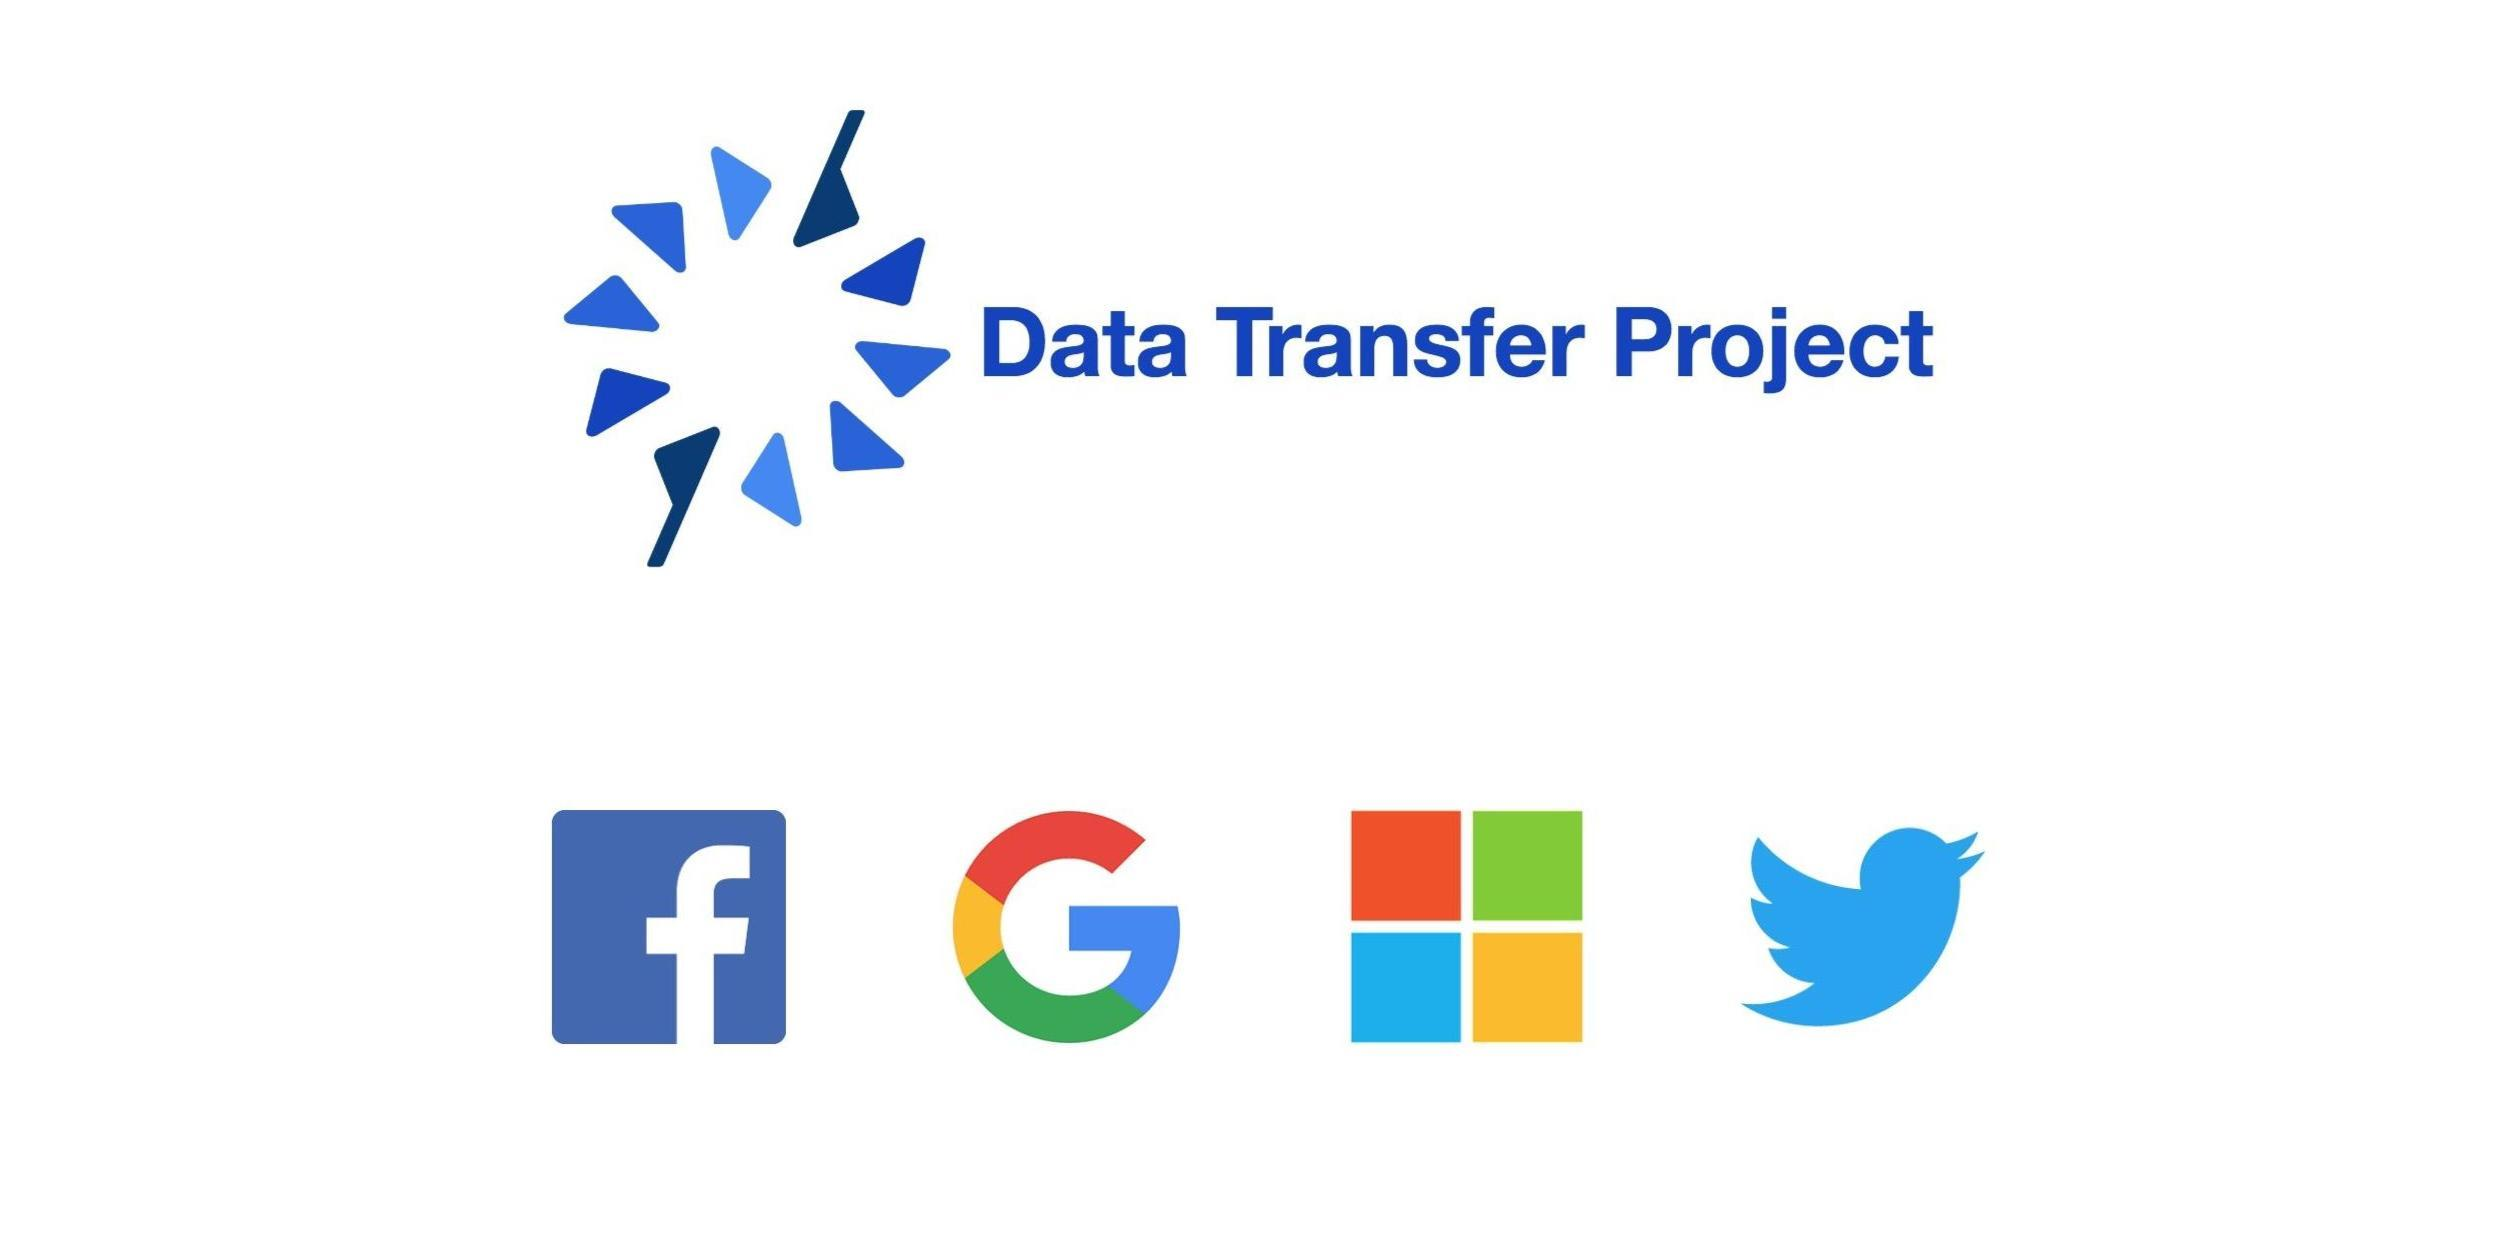 پروژه Data Transfer Project